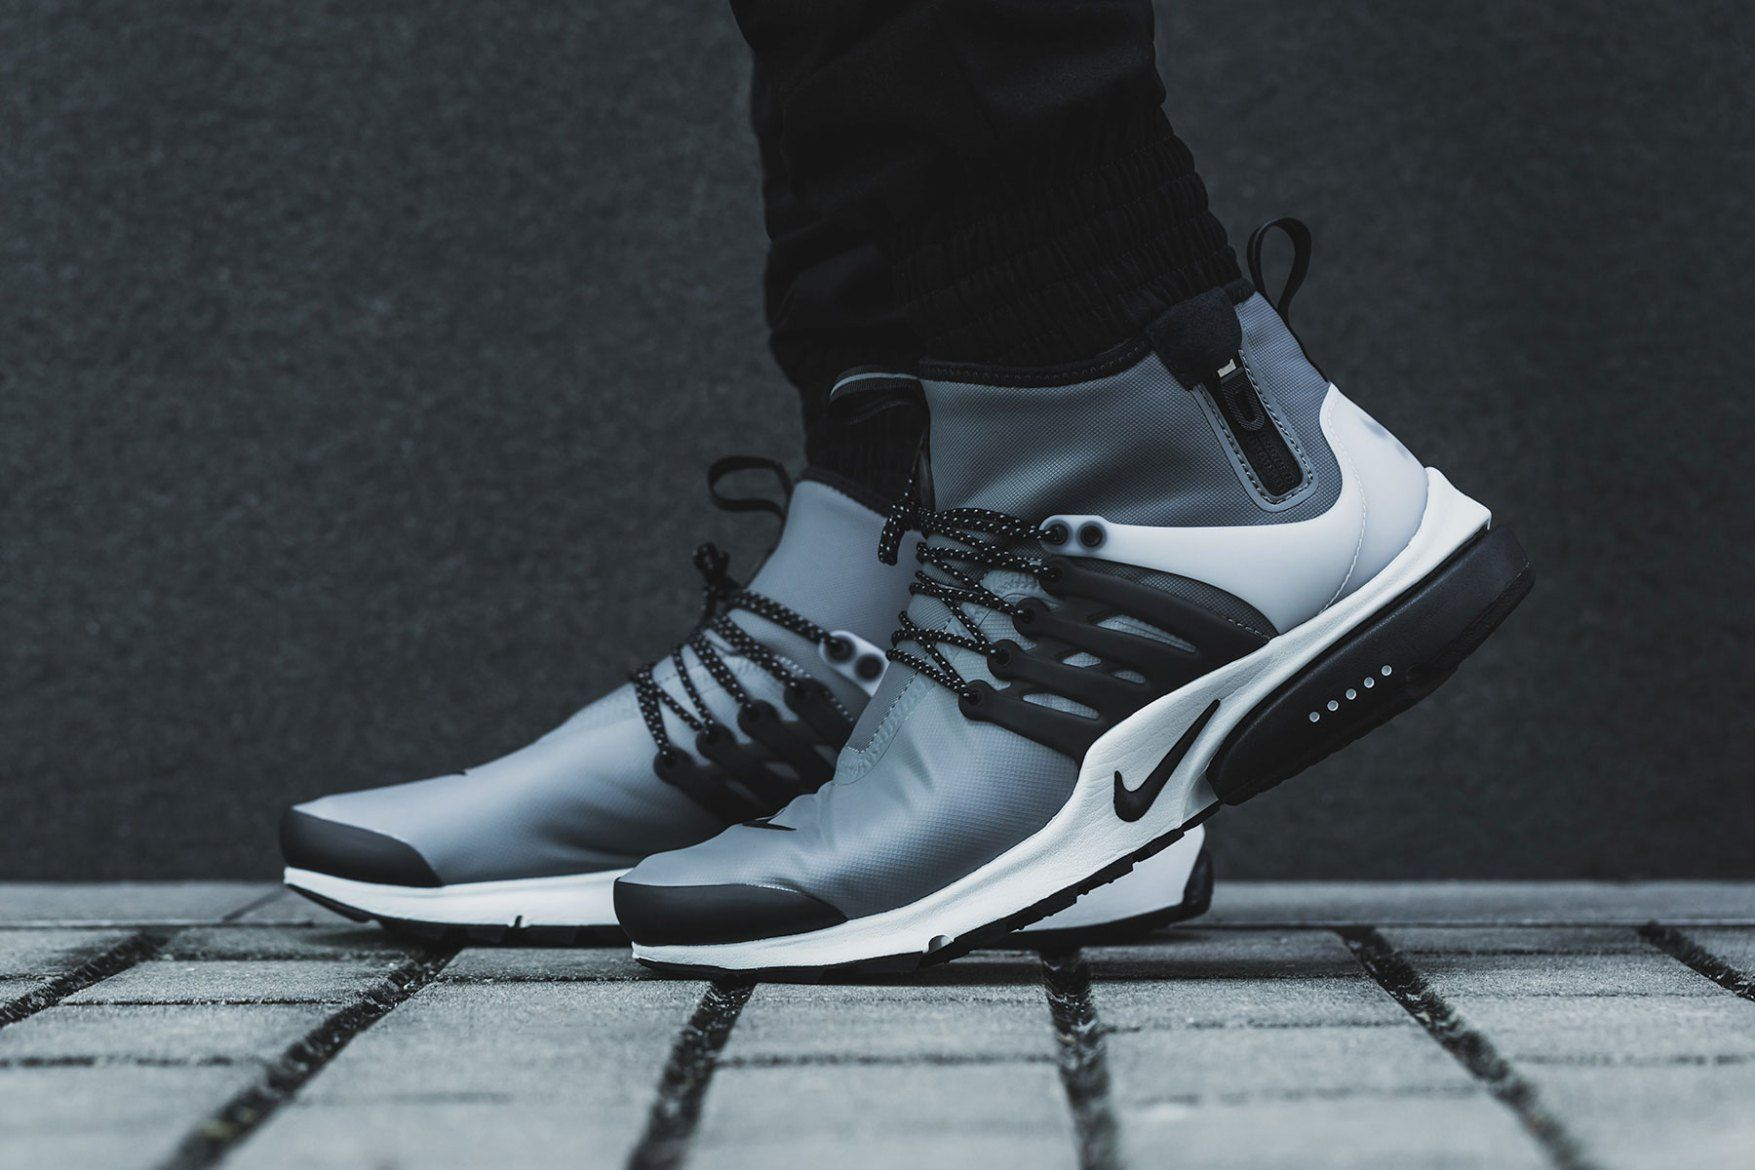 Get A Closer Look At The Nike Air Presto Mid Utility S Weatherized Construction Nike Nike Air Presto Sneakers